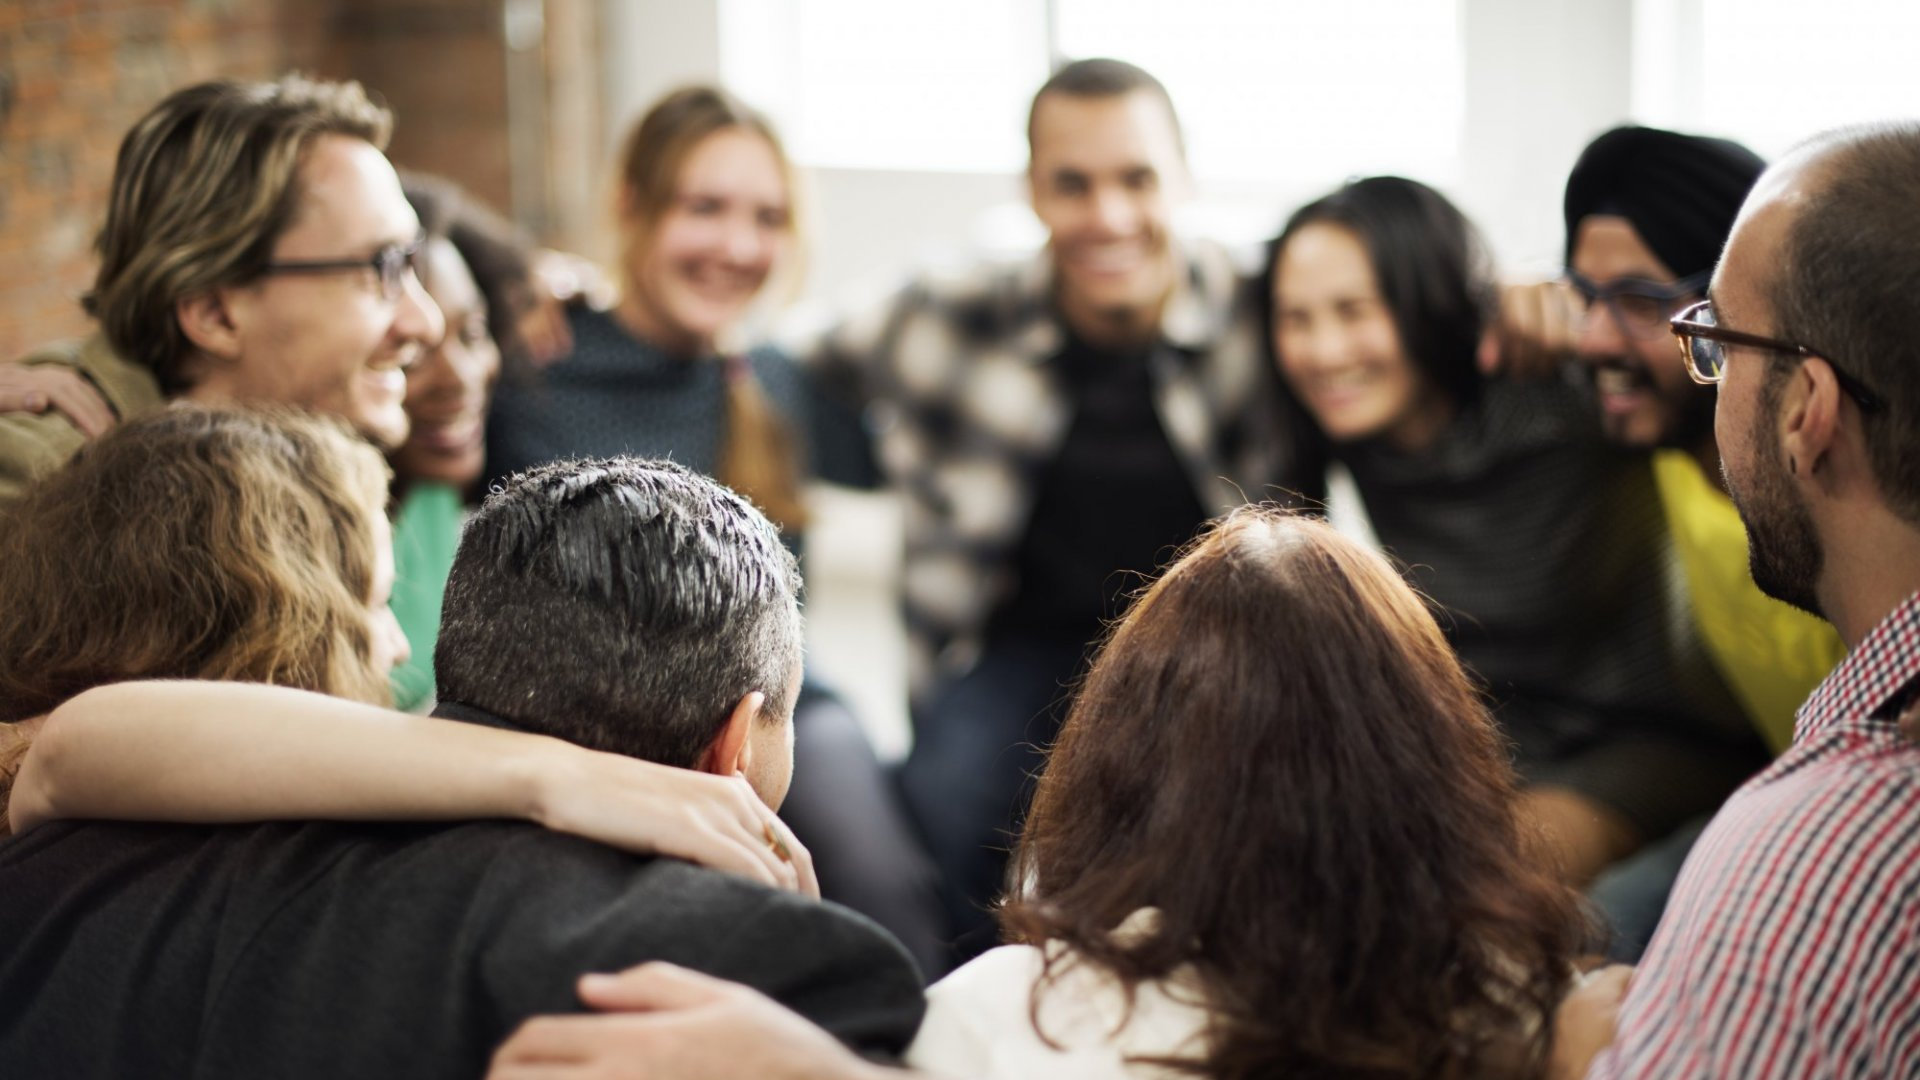 3 Unique Teambuilding Activities That Immediately Improve Communication and Teamwork